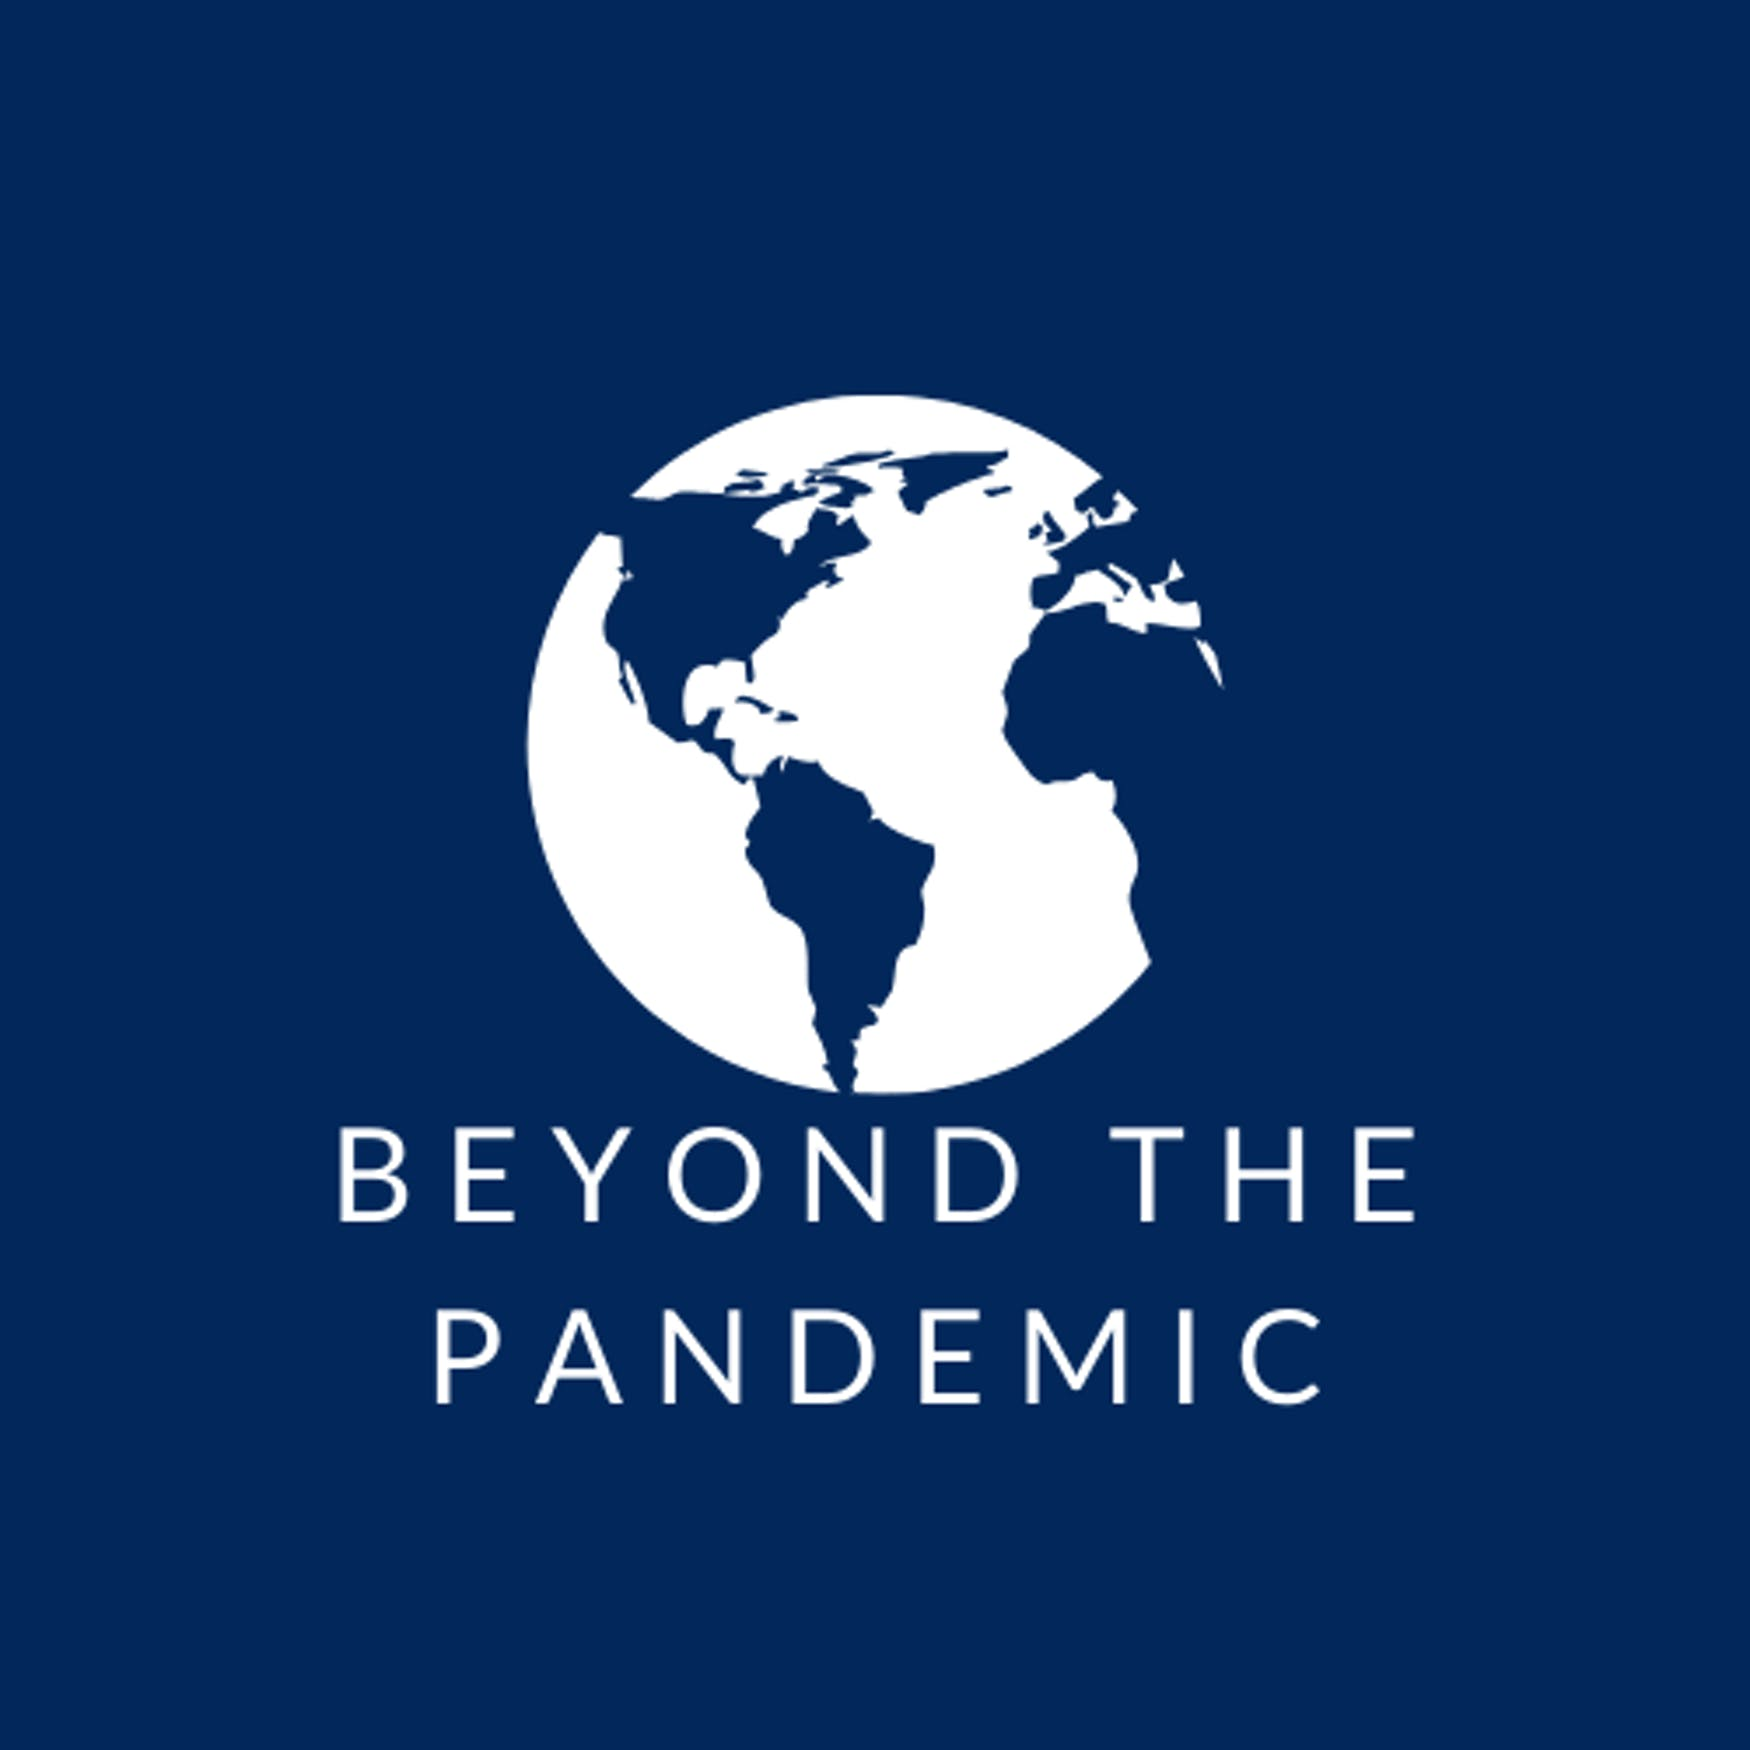 beyond-the-pandemic-1